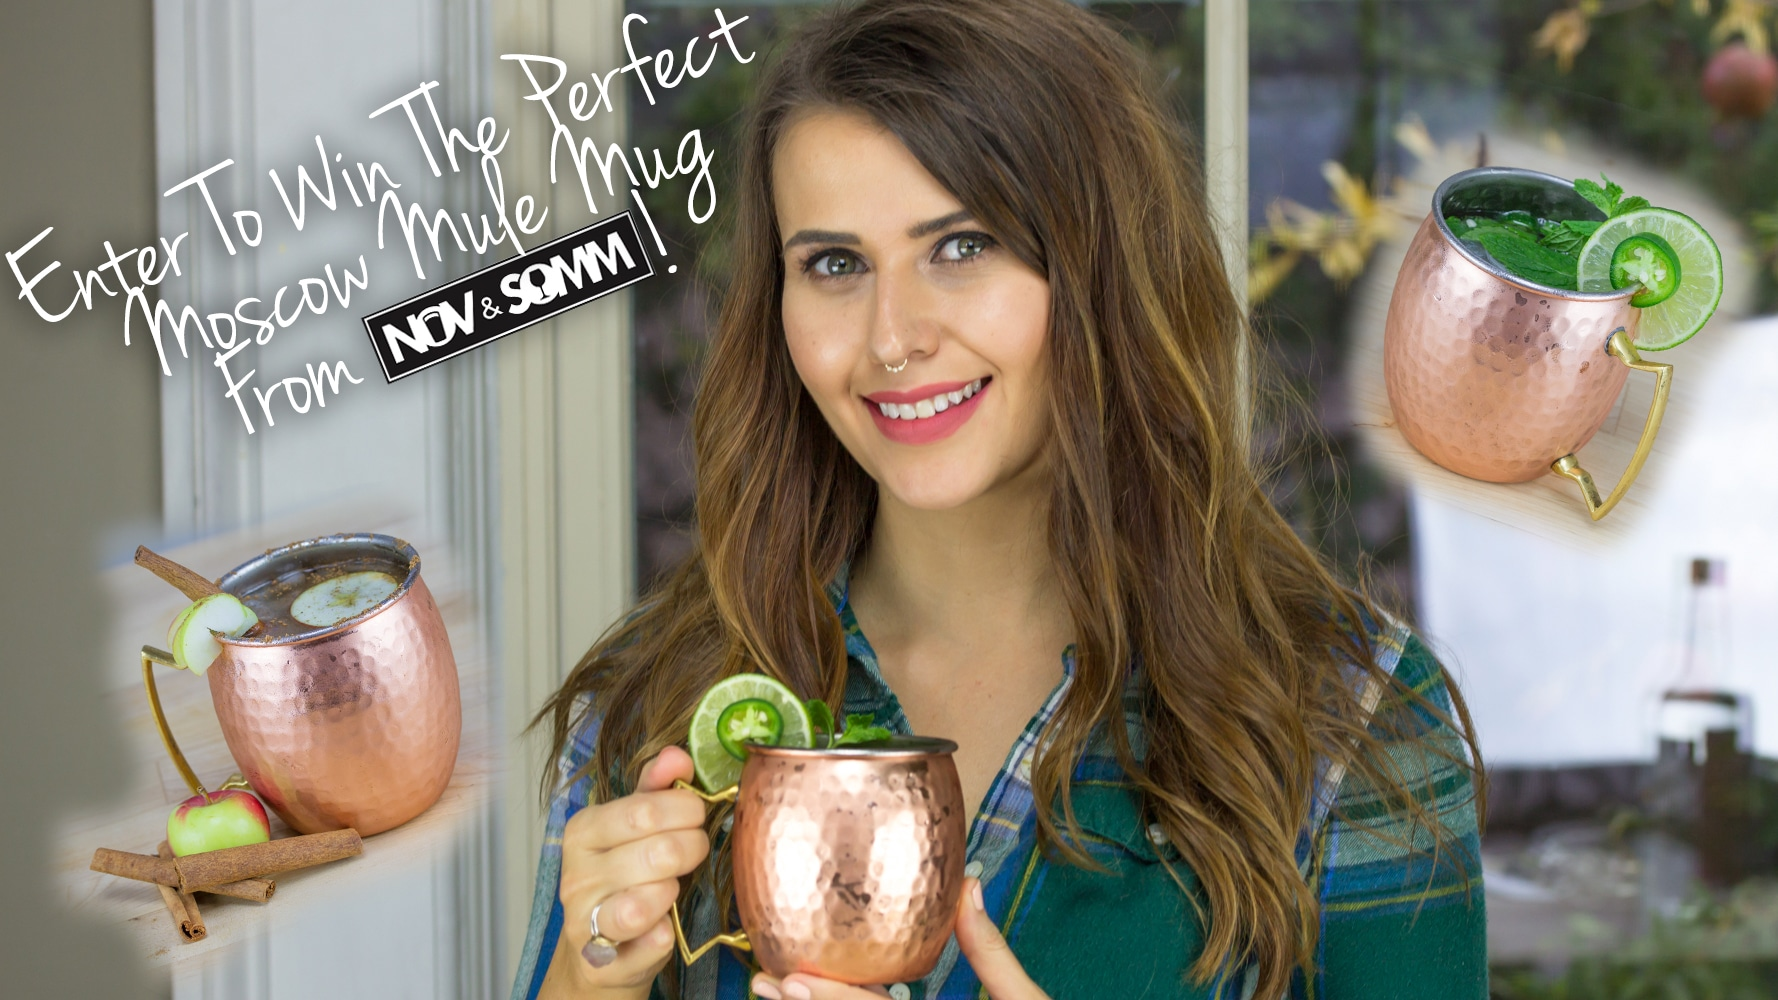 Enter to Win a Perfect Moscow Mule Mug from Nov & Somm!